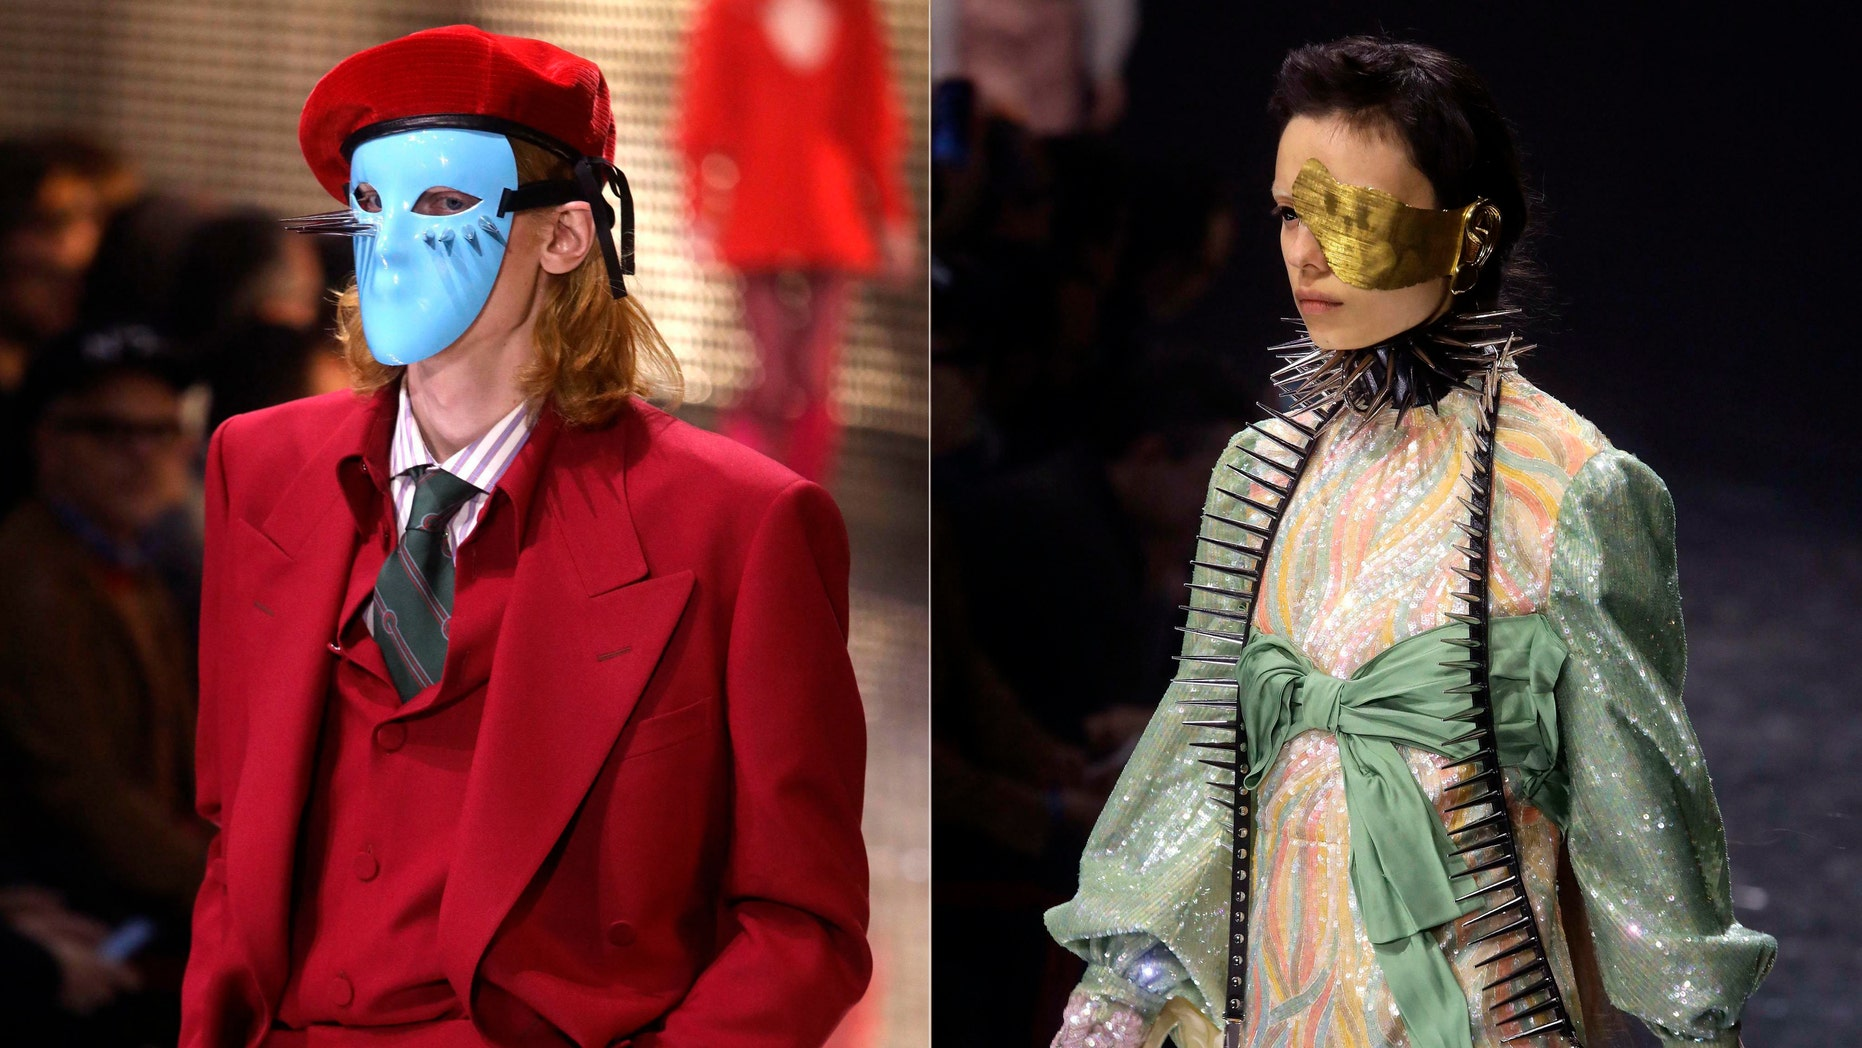 Gucci sent out more than a dozen eerie eye and face covers on both male and female models in its fall 2019 show in Milan.